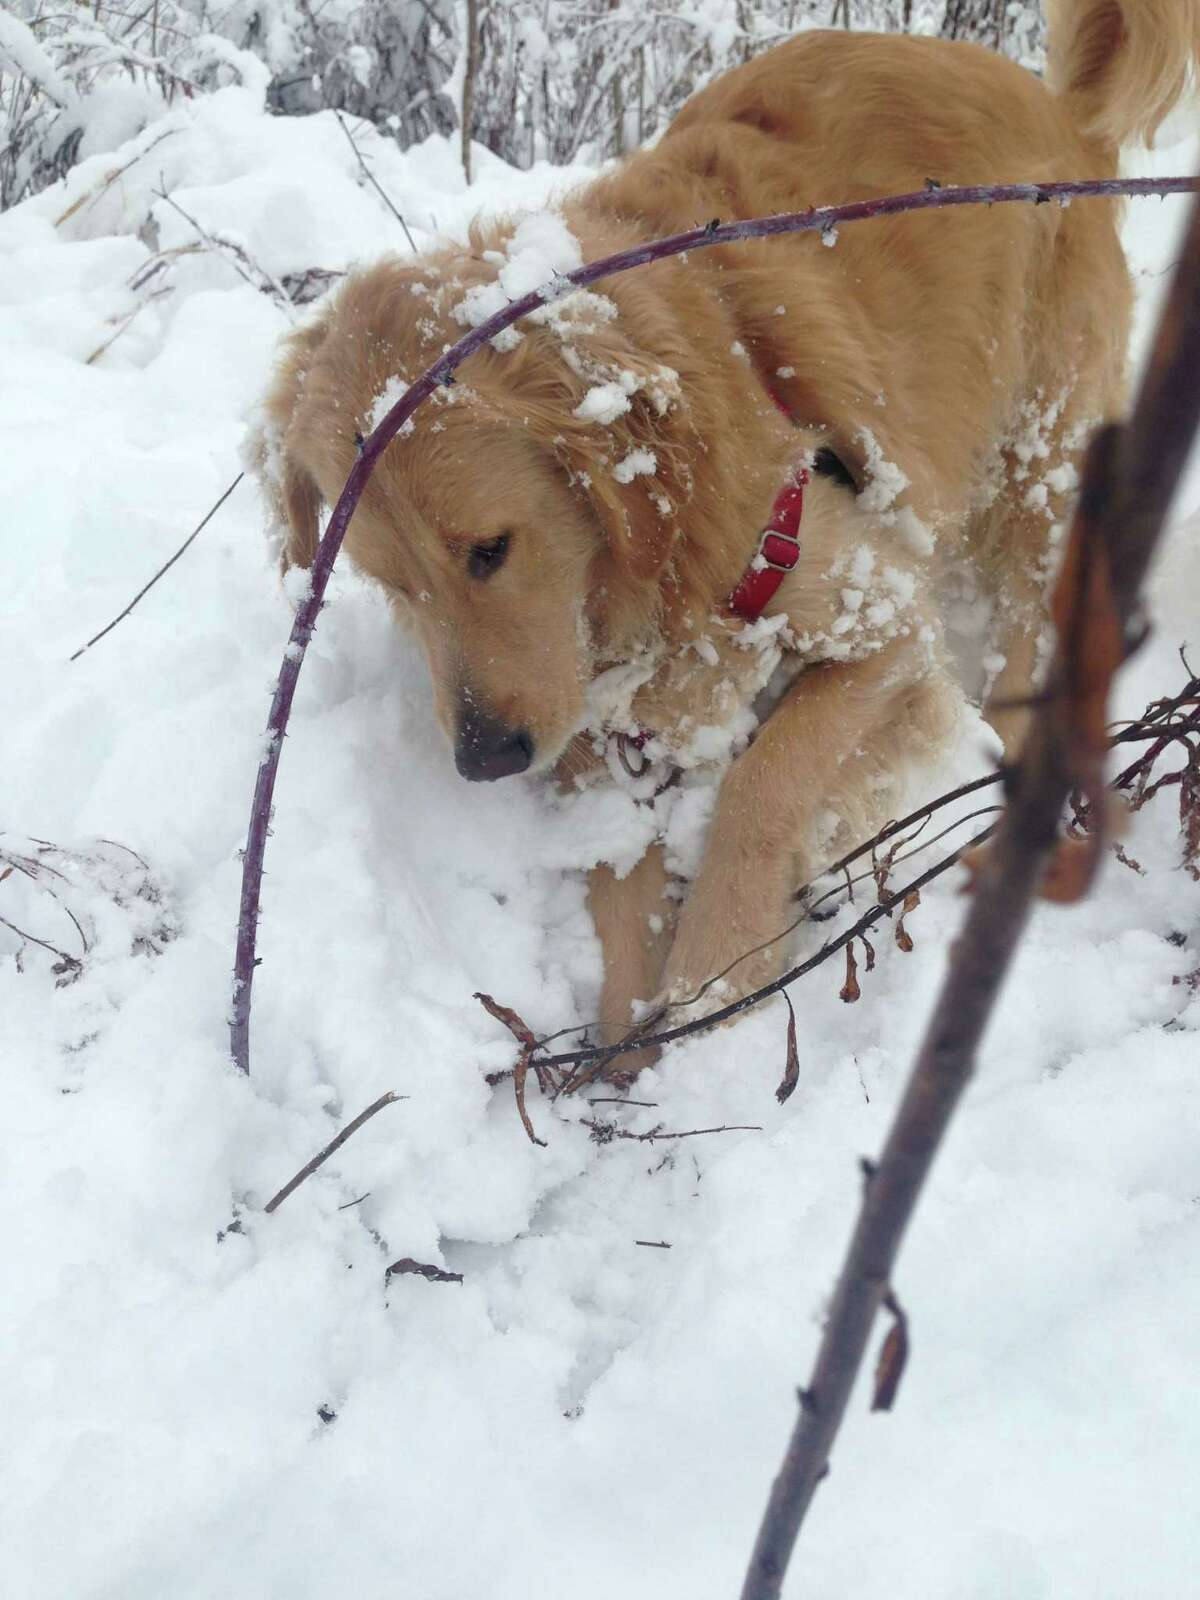 Max the dog loves to hunt for rabbits, diving head first in the deep snow, says Victoria Morrell. (provided photo)